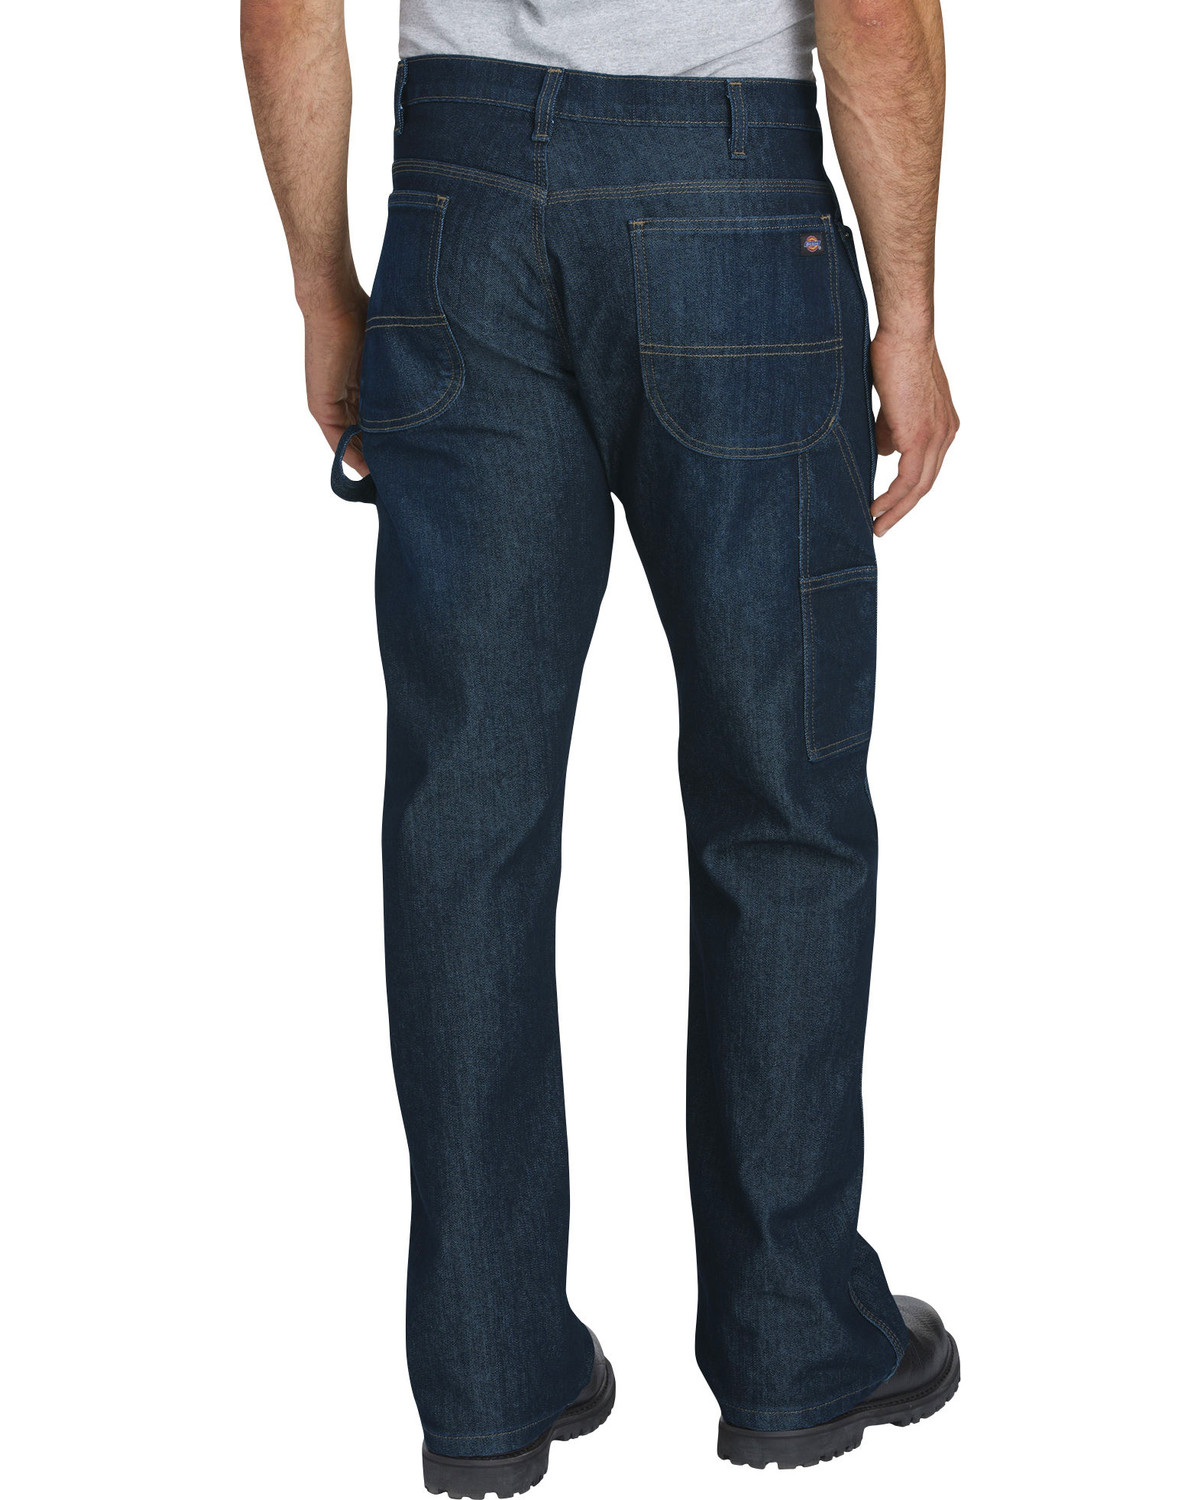 4a4e3f8d Dickies Men's Tough Max Relaxed Fit Carpenter Jeans | Boot Barn